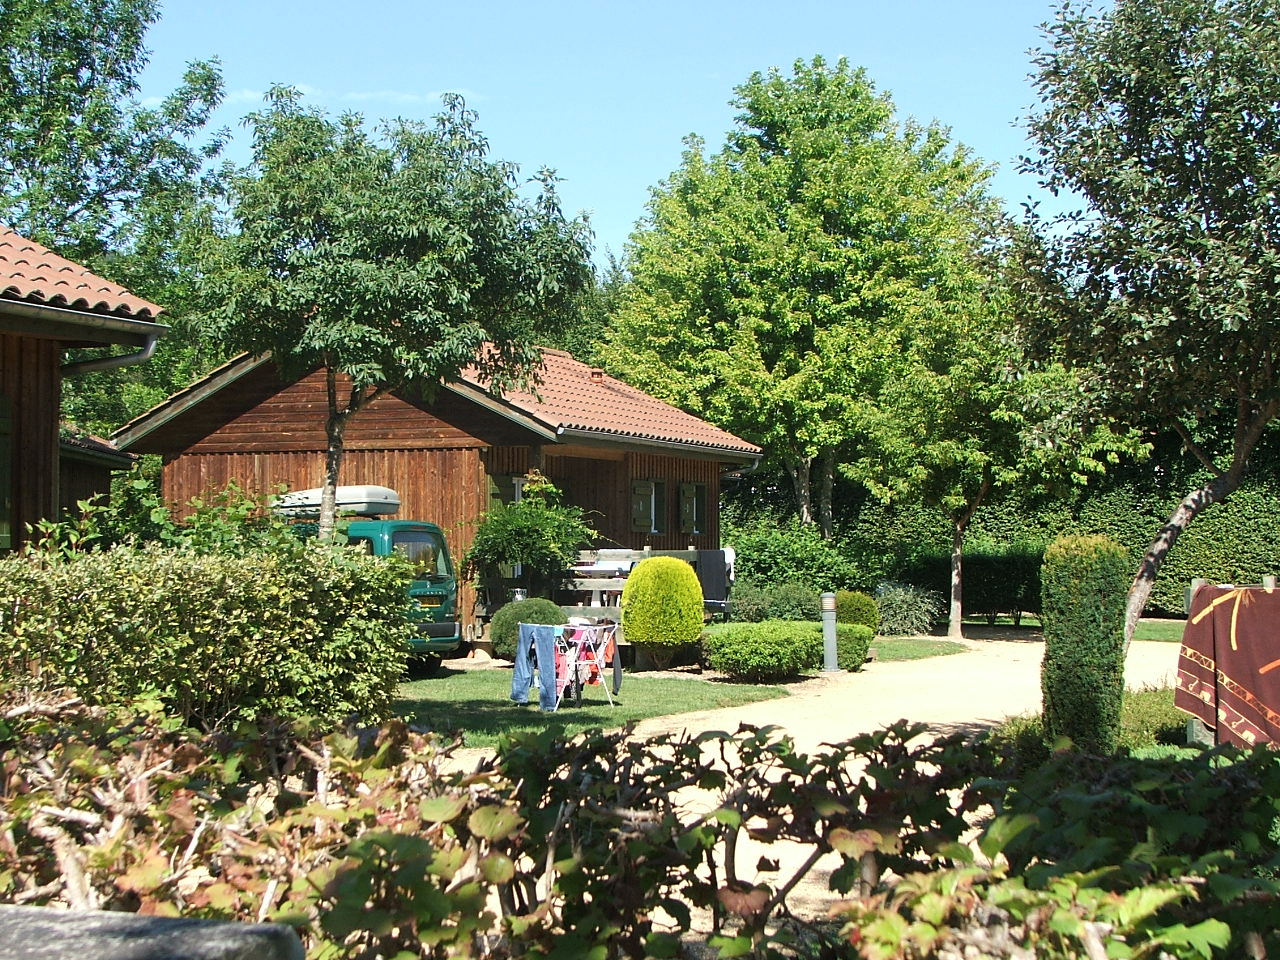 Camping municipal campings ambert puy de d me auvergne for Camping puy de dome piscine